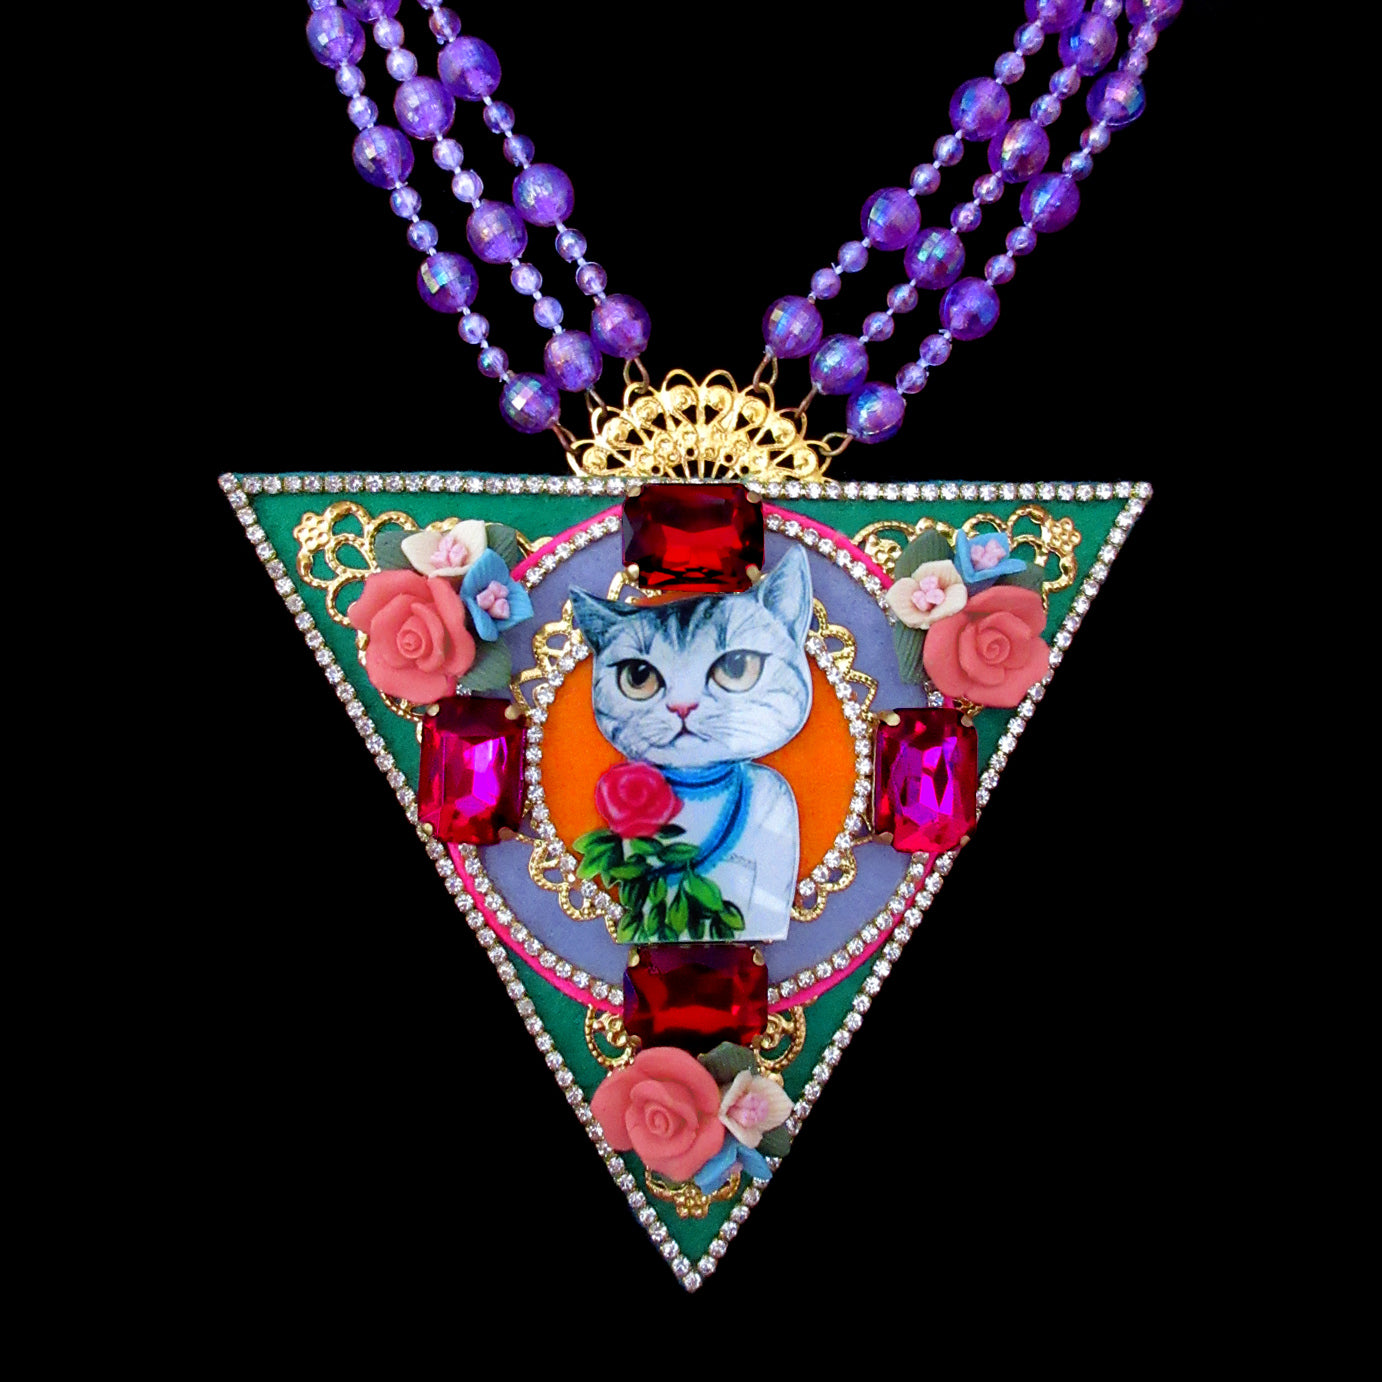 mouchkine jewelry handmade in france kitsch and couture cat necklace